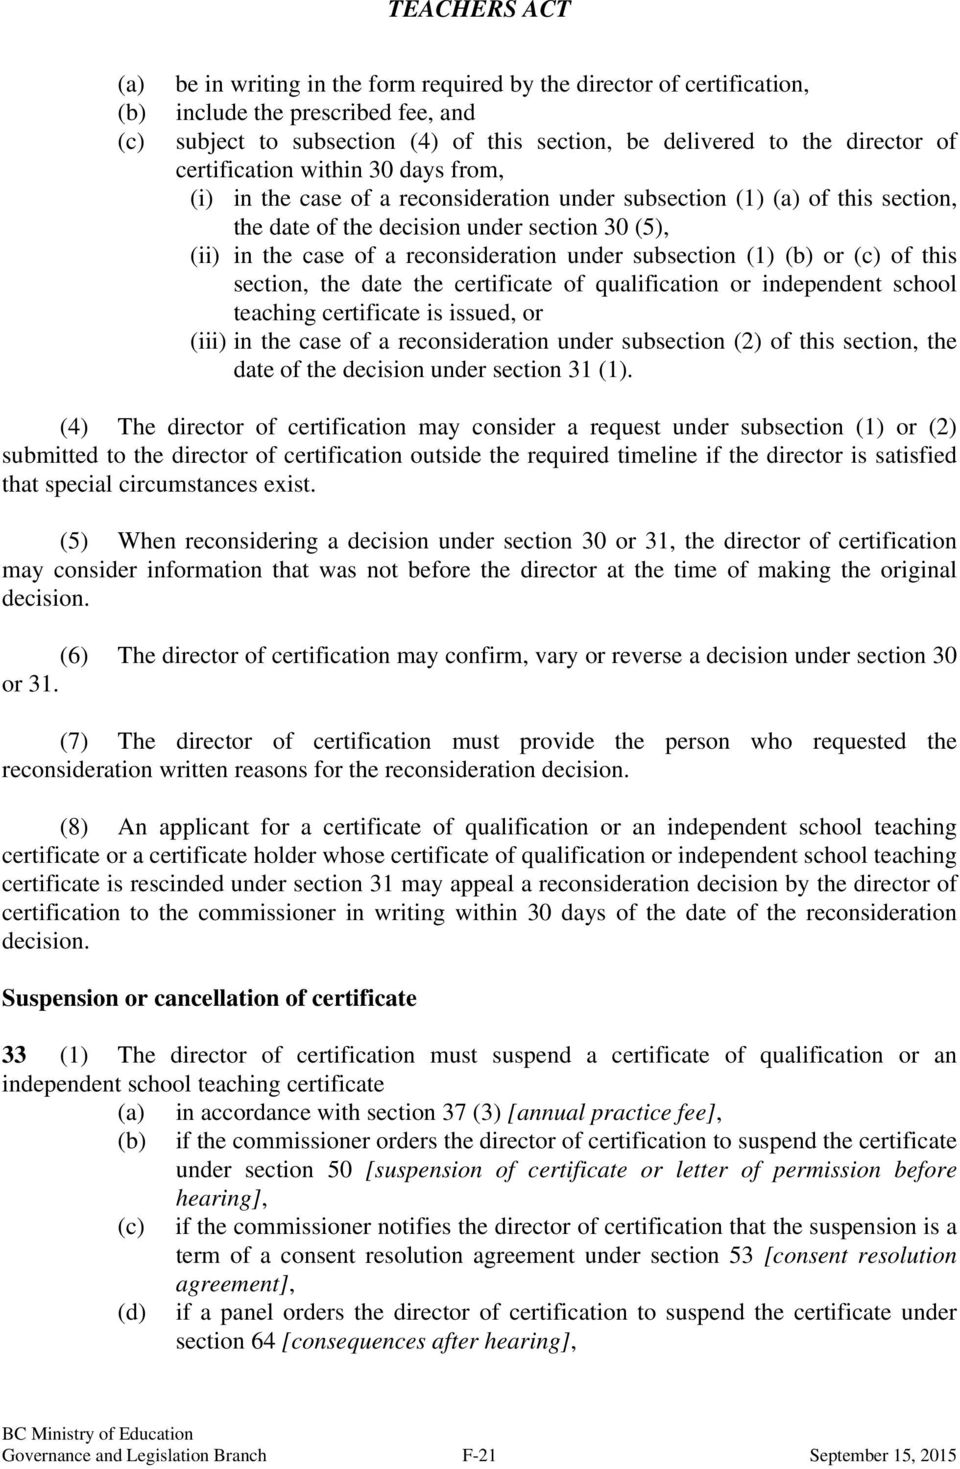 under subsection (1) (b) or (c) of this section, the date the certificate of qualification or independent school teaching certificate is issued, or (iii) in the case of a reconsideration under